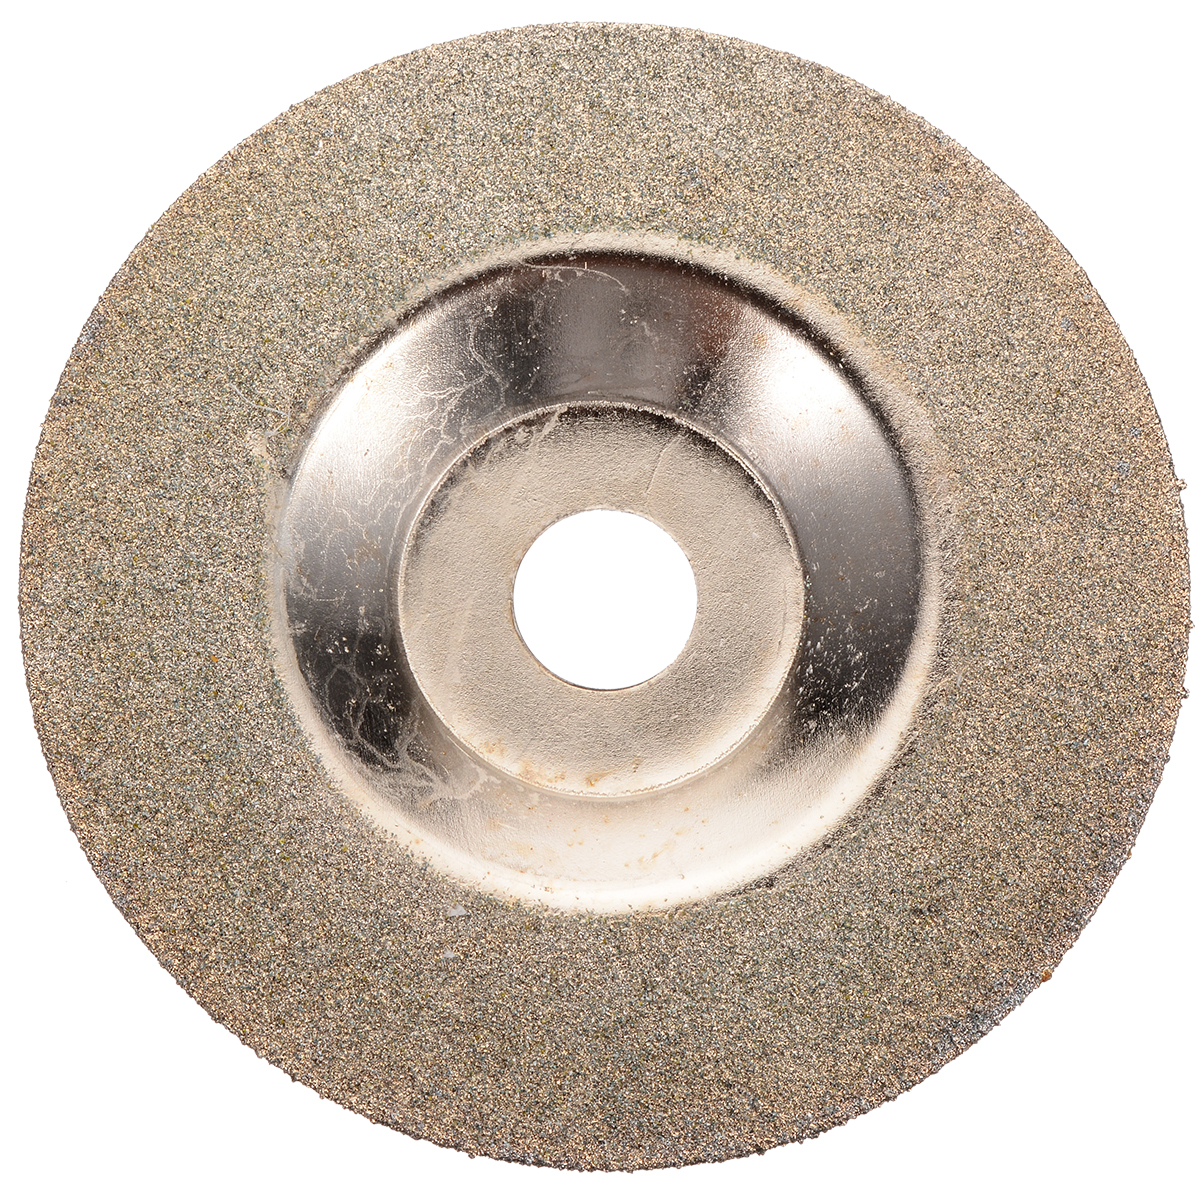 80 Grit Diamond Grinding Wheel Polishing Disc Pads Grinder Cup Angle Grinder Rotary Tool Grind Stone Glass 100mm*16mm